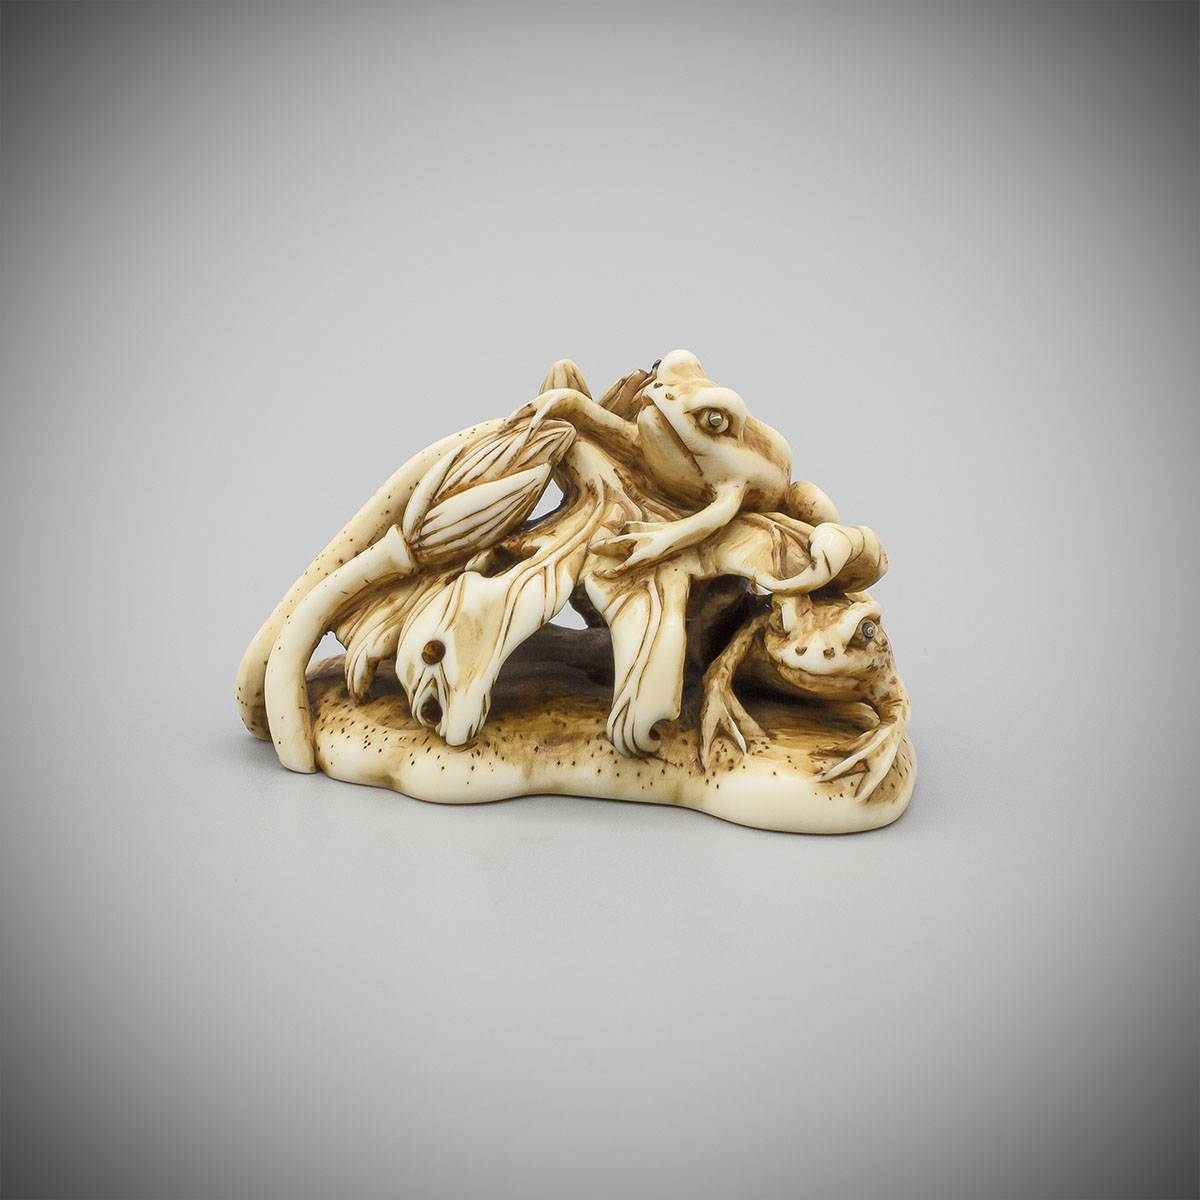 Ivory Netsuke of Two Frogs and Lotus, attributed to Okazaki Rensai, MR3576_v.1-2